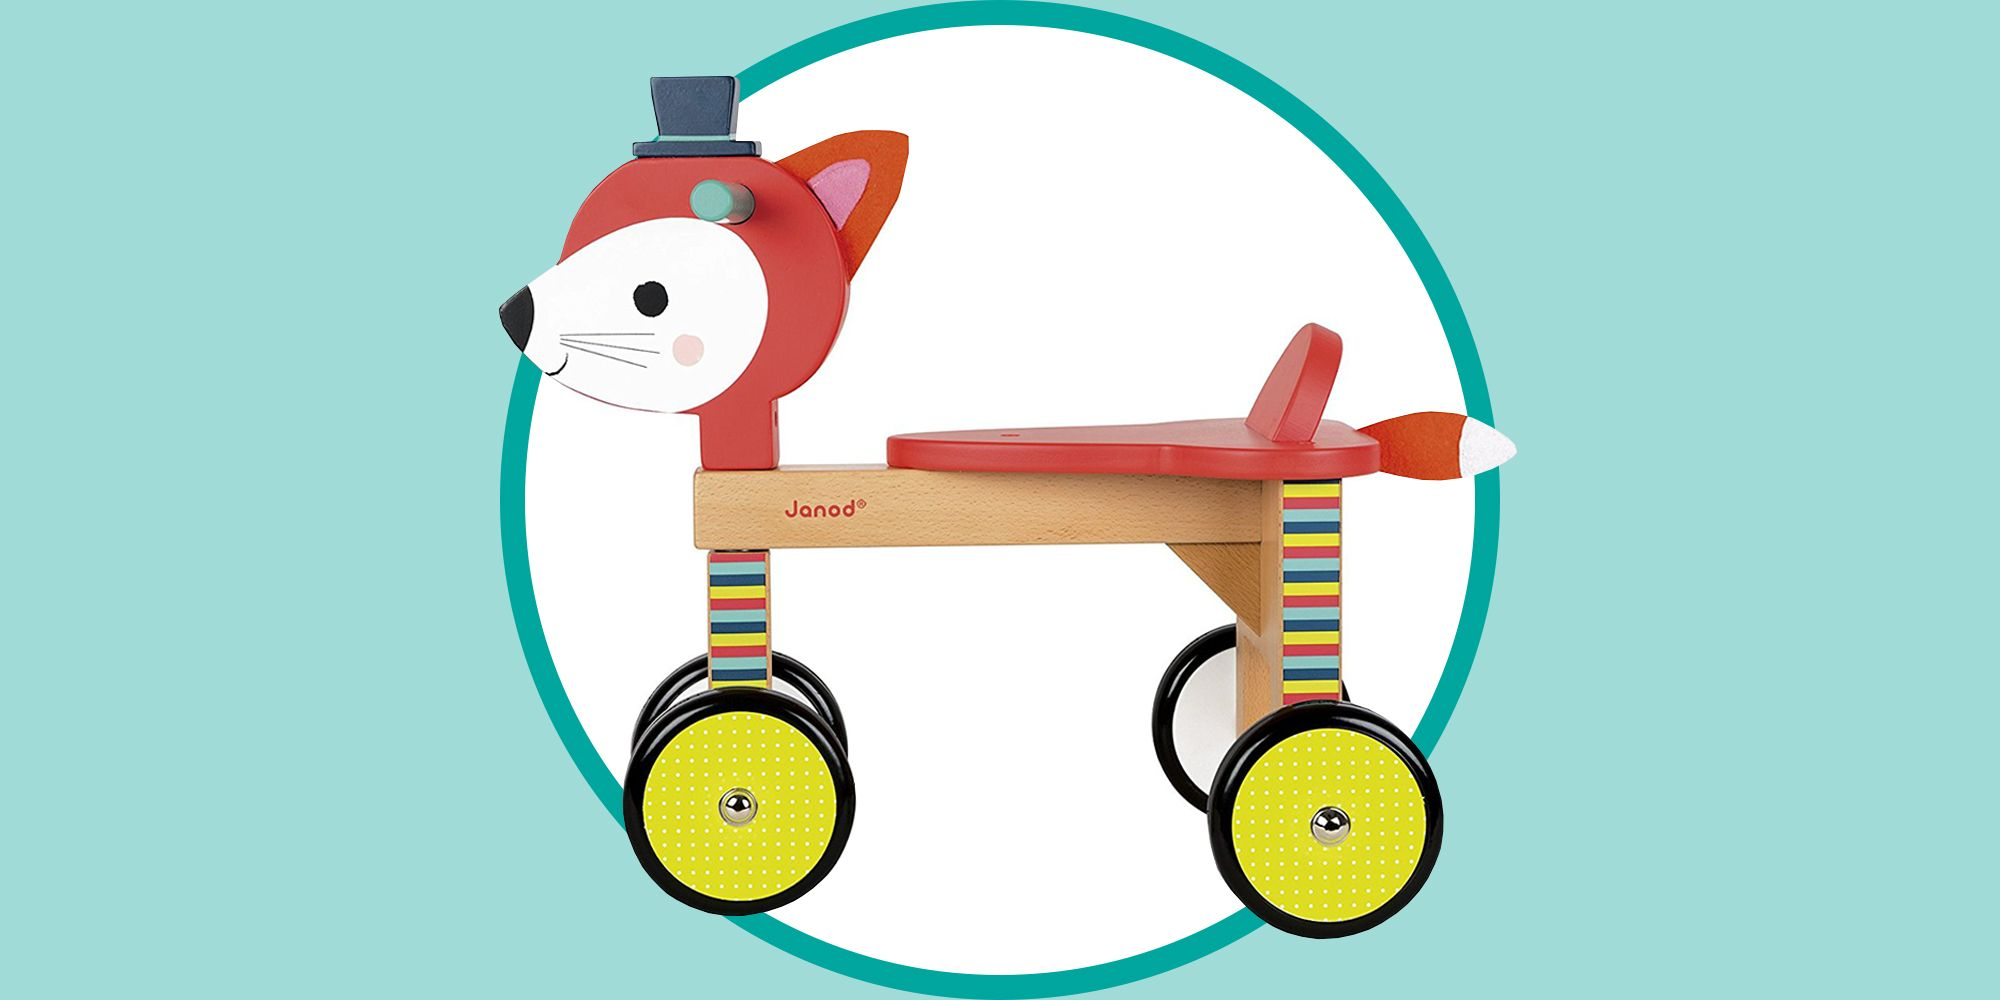 13 Best Ride-on Toys for Kids & Toddlers in 2018 - Cute Kids Riding Toys